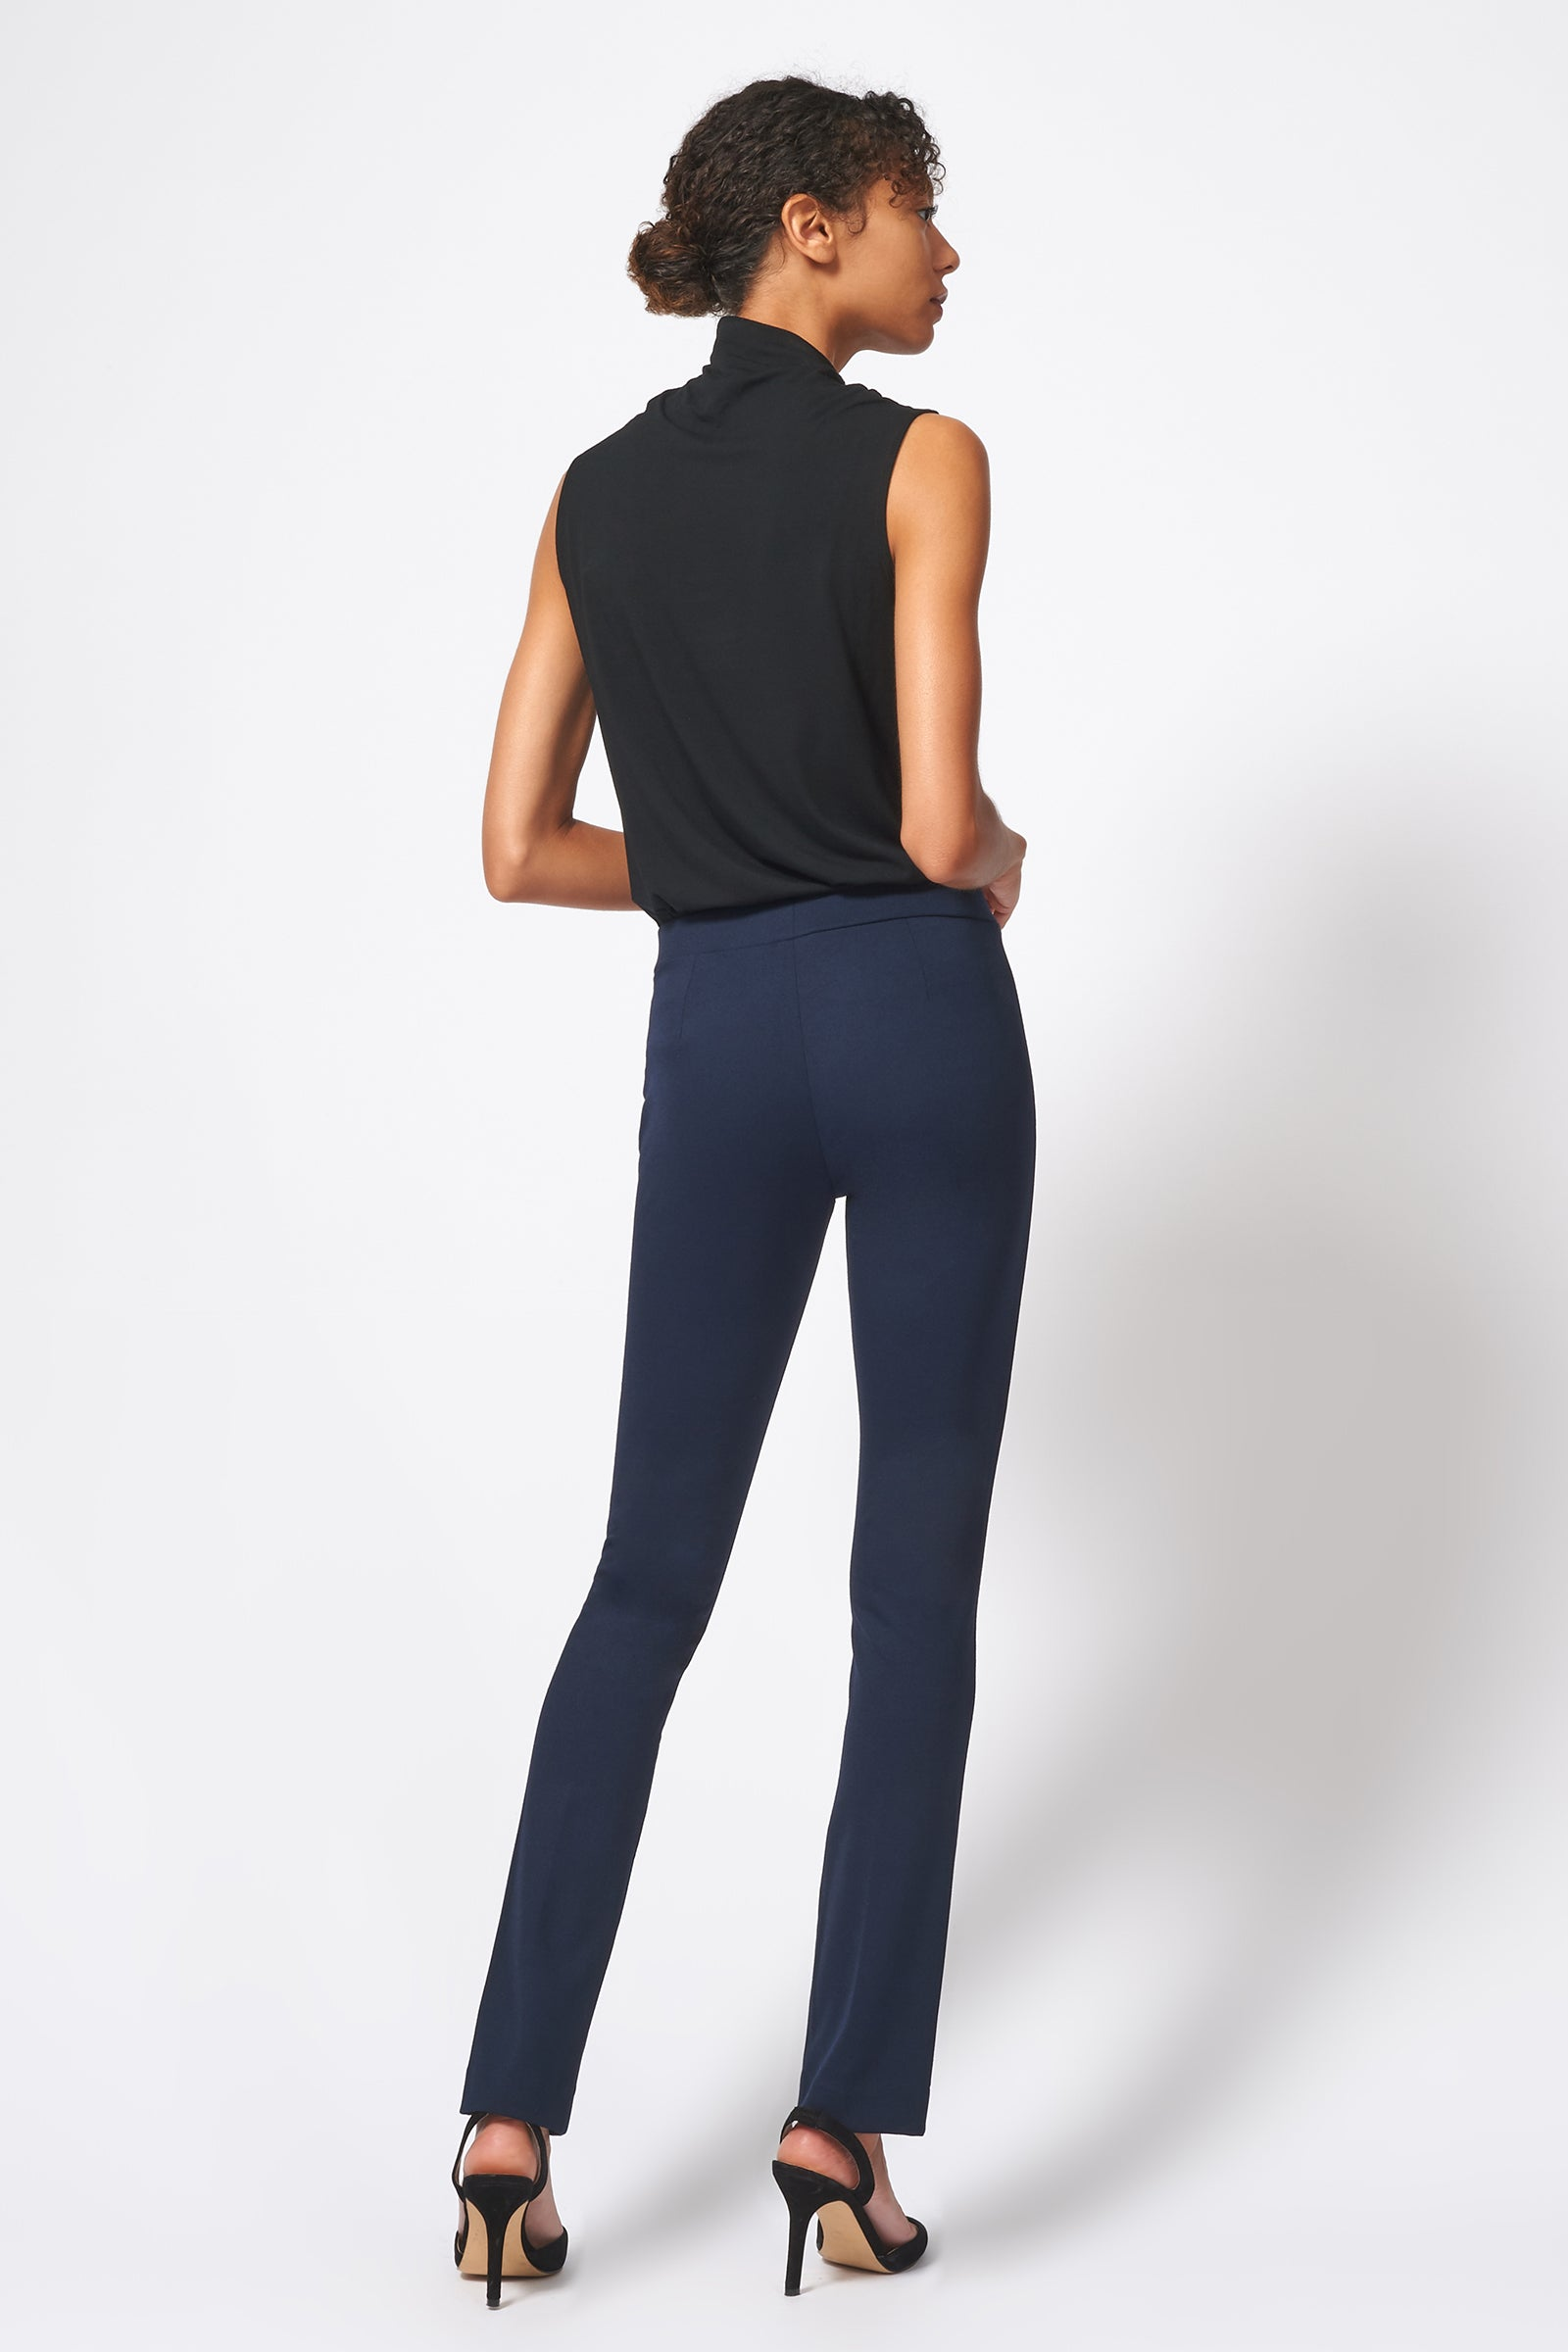 Kal Rieman Pintuck Ponte Straight Leg Pant in Navy on Model Full Back View